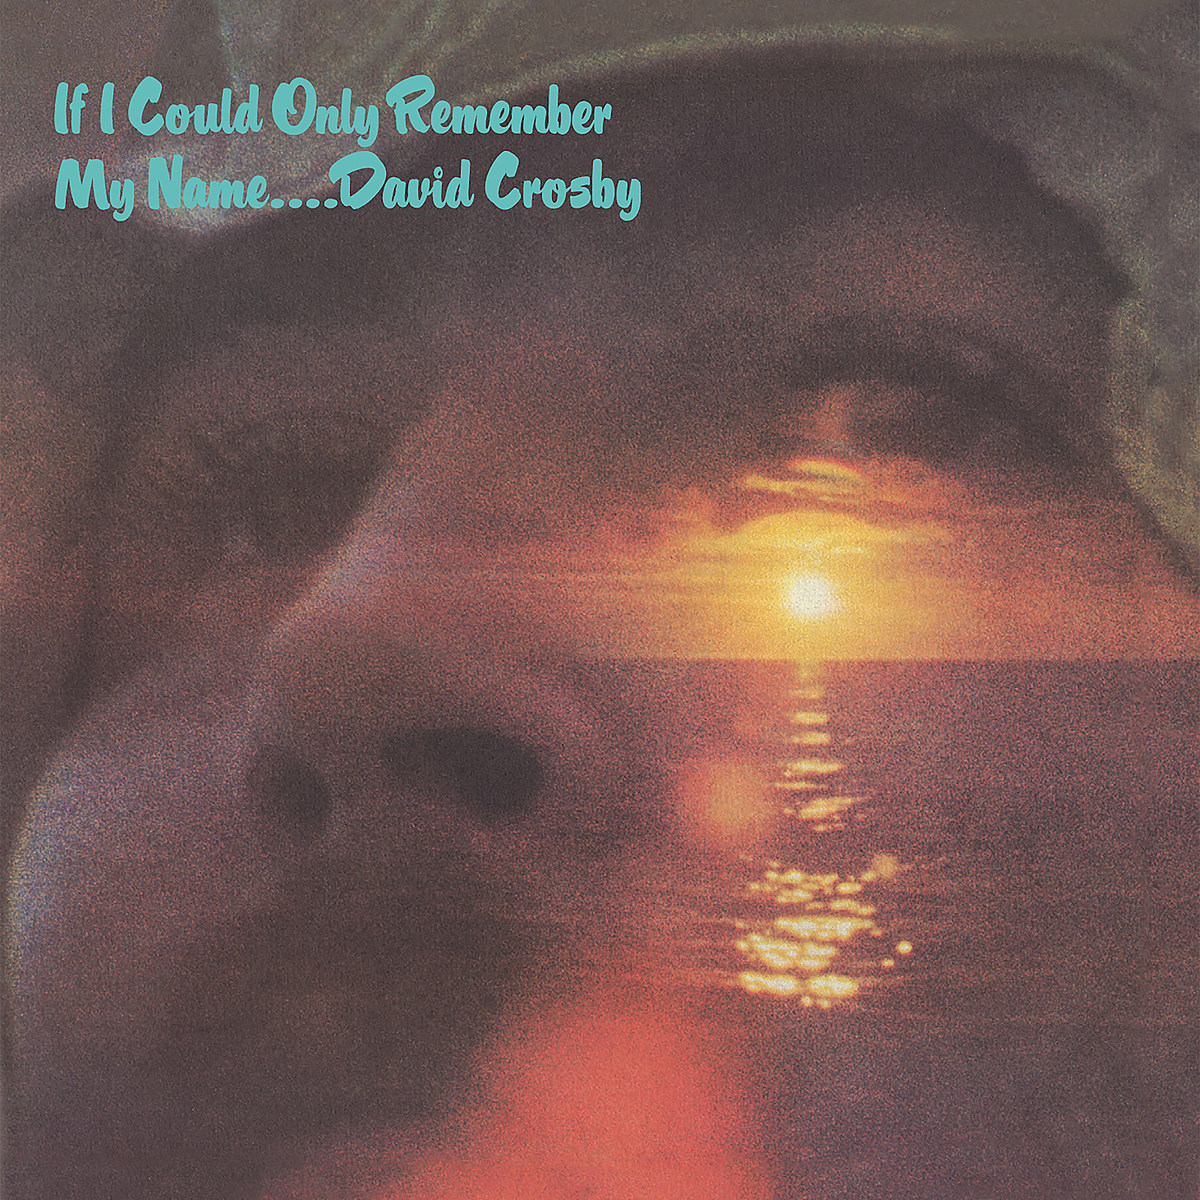 attachment-david-crosby-if-i-could-only-remember-my-name-50